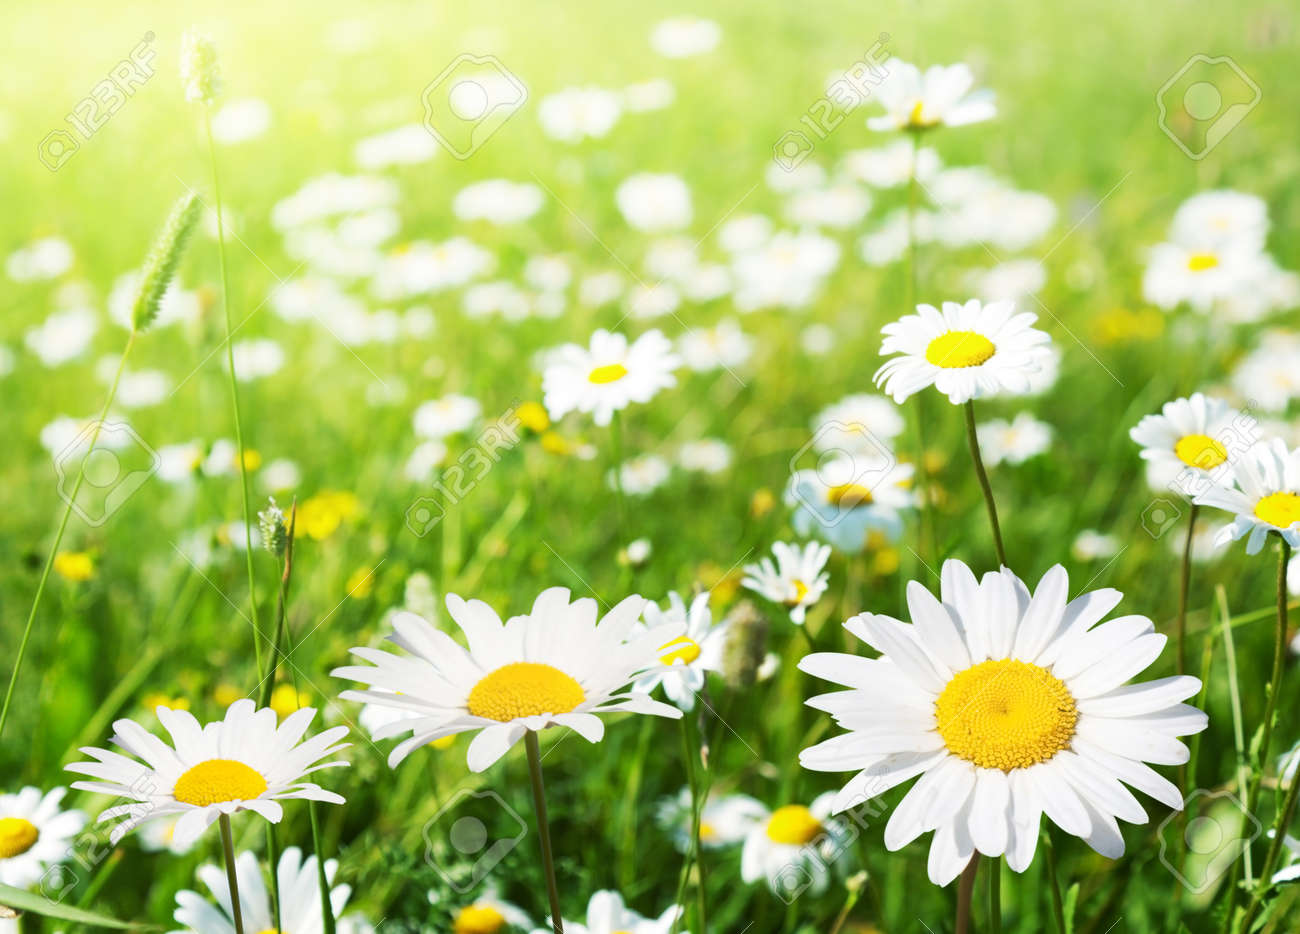 Field Of Daisy Flowers Stock Photo Picture And Royalty Free Image